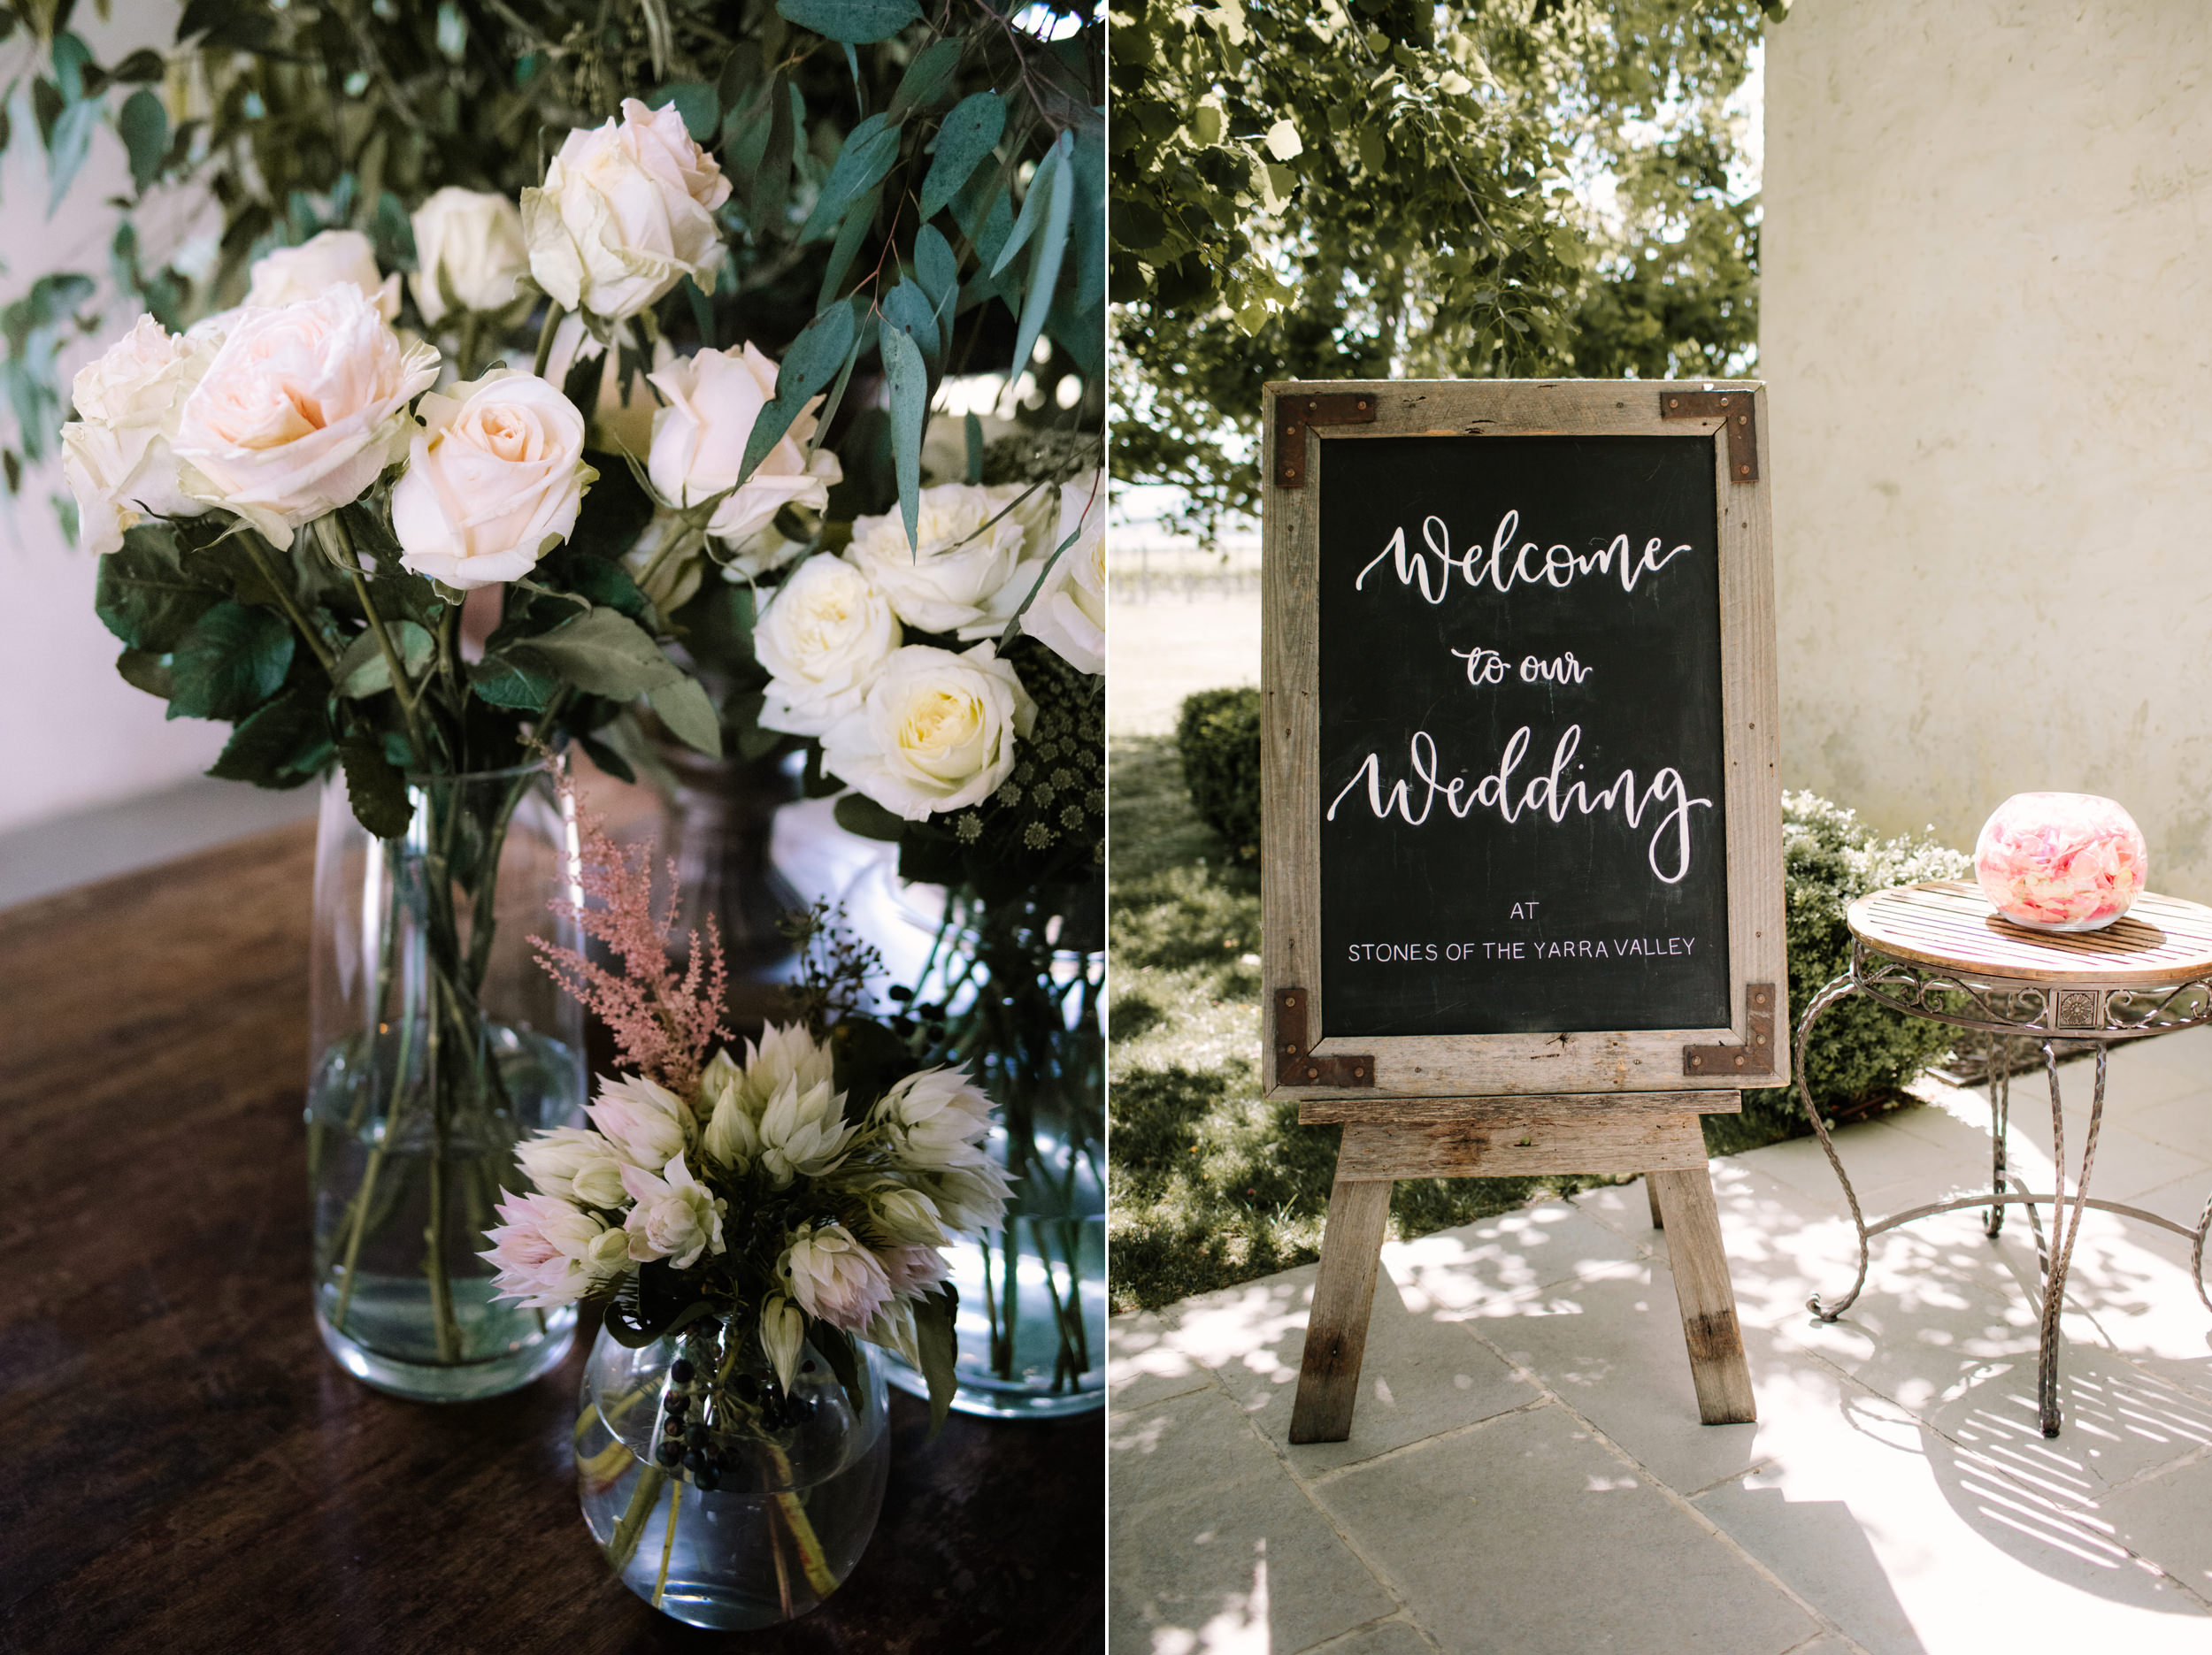 I-Got-You-Babe-&.Co.-Stones-of-the-Yarra-Valley-Wedding-Beverly-Ross0028.JPG